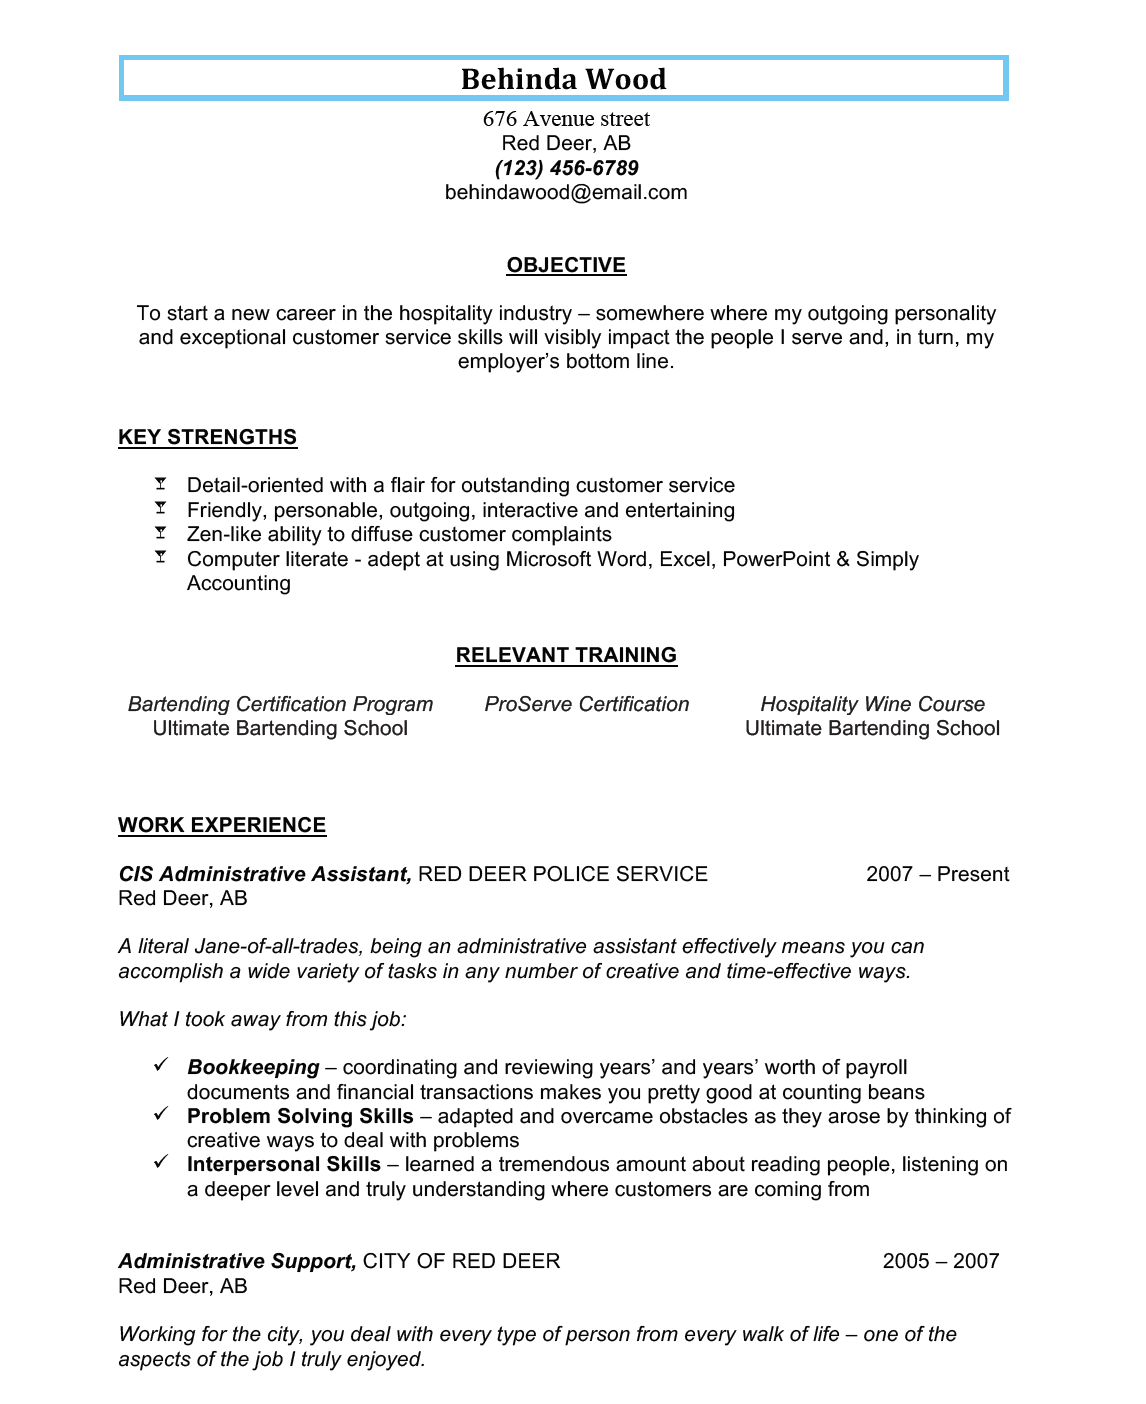 sample bartending resume 2 - Bartender Resume Sample 2 2